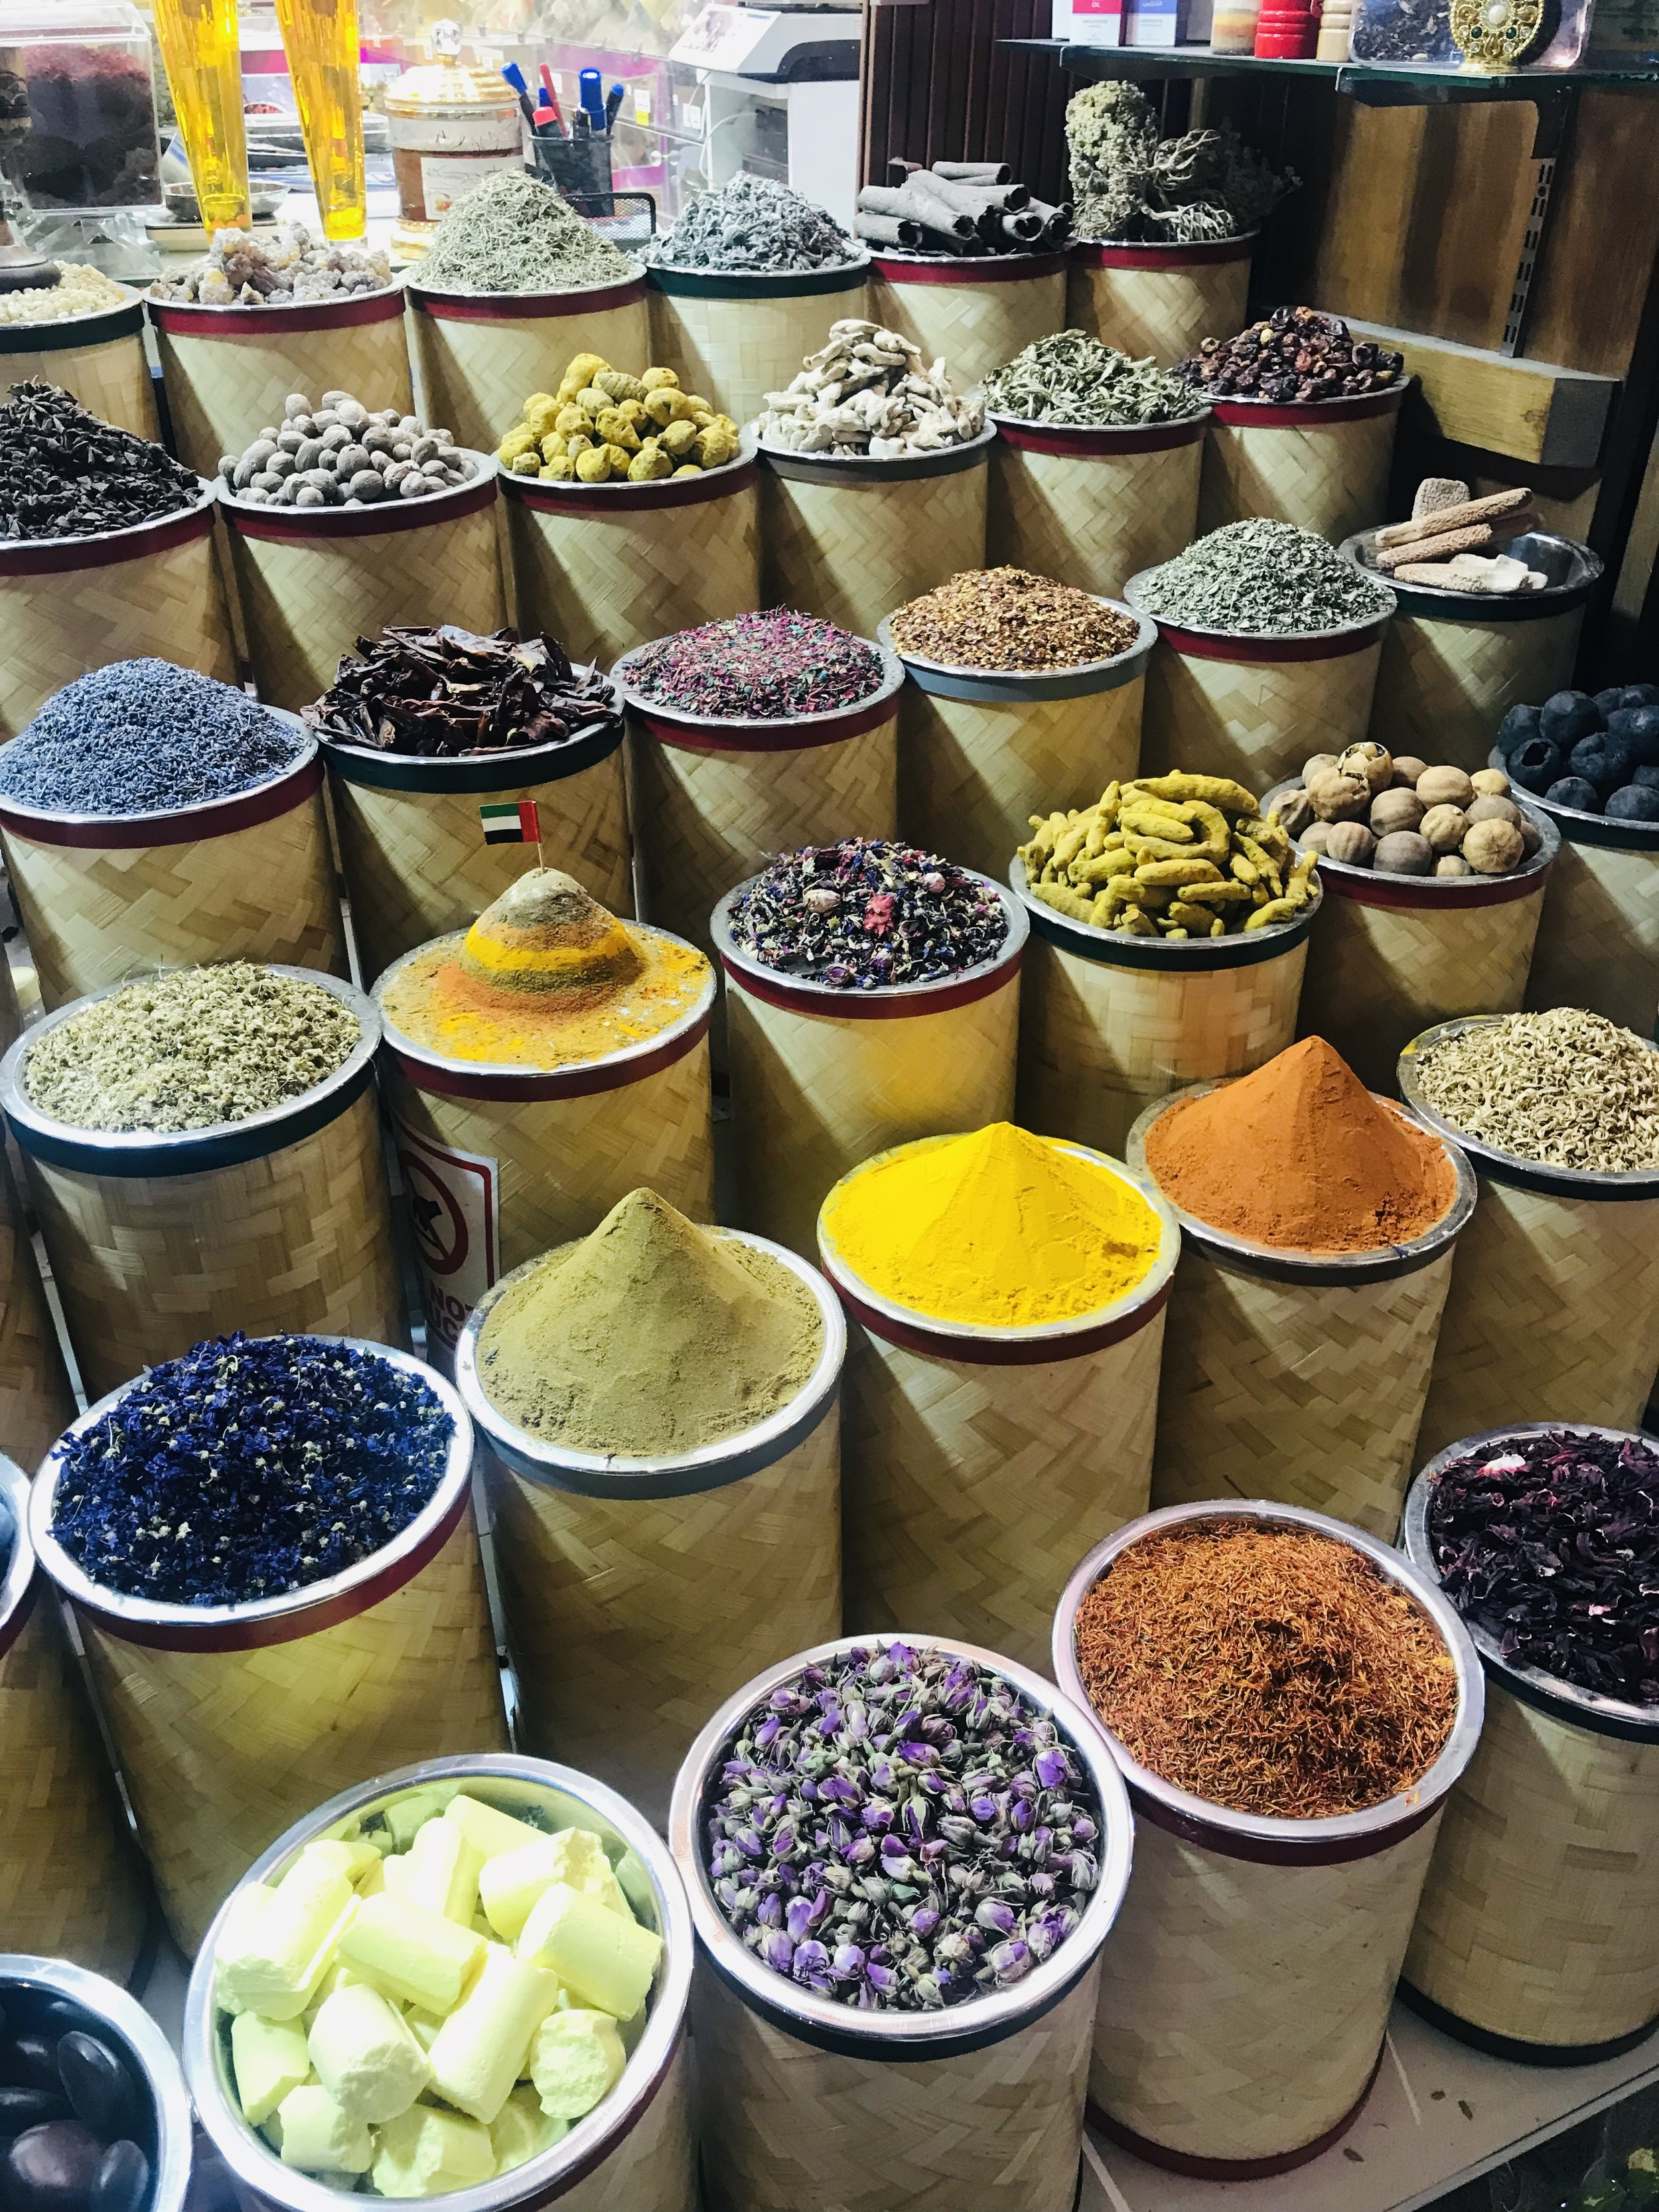 Spices galore; the fragrance that will assault your nostrils is something out of this world!